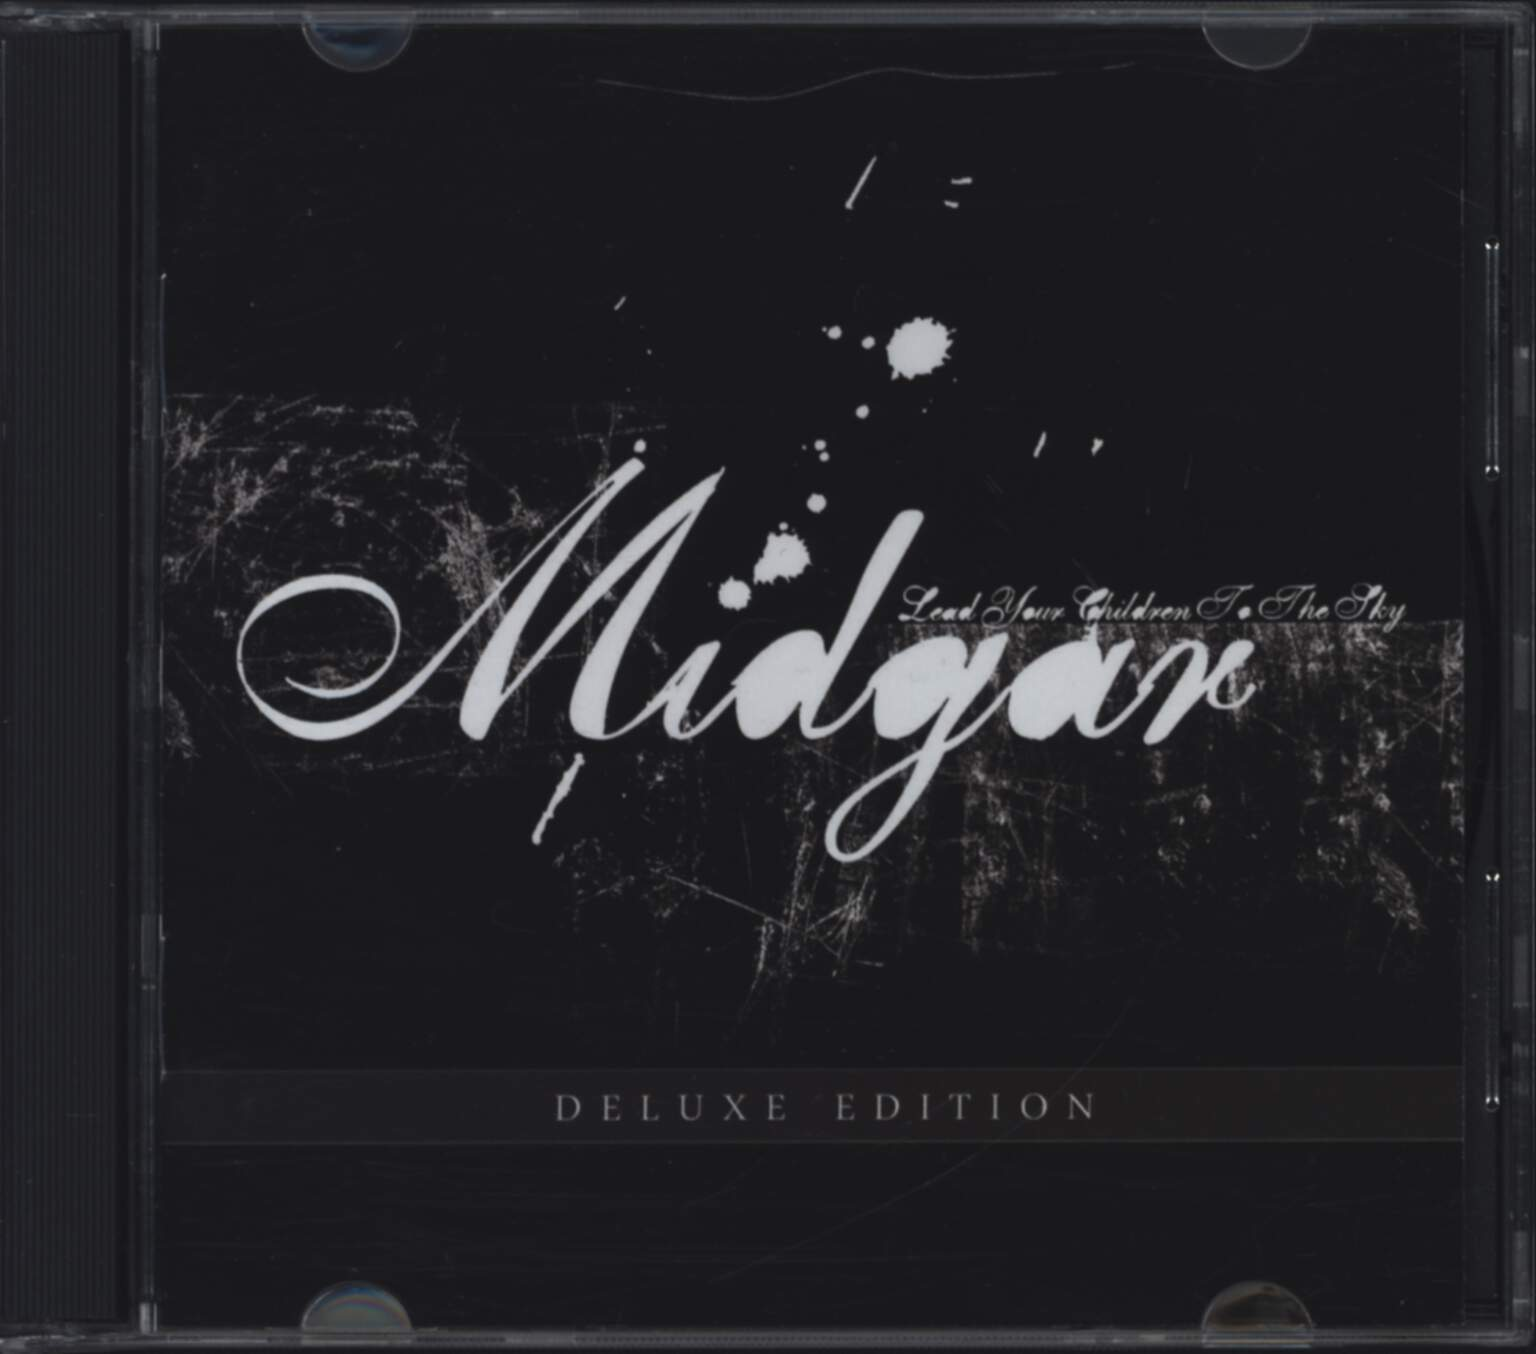 Midgar: Lead Your Children To The Sky, CD